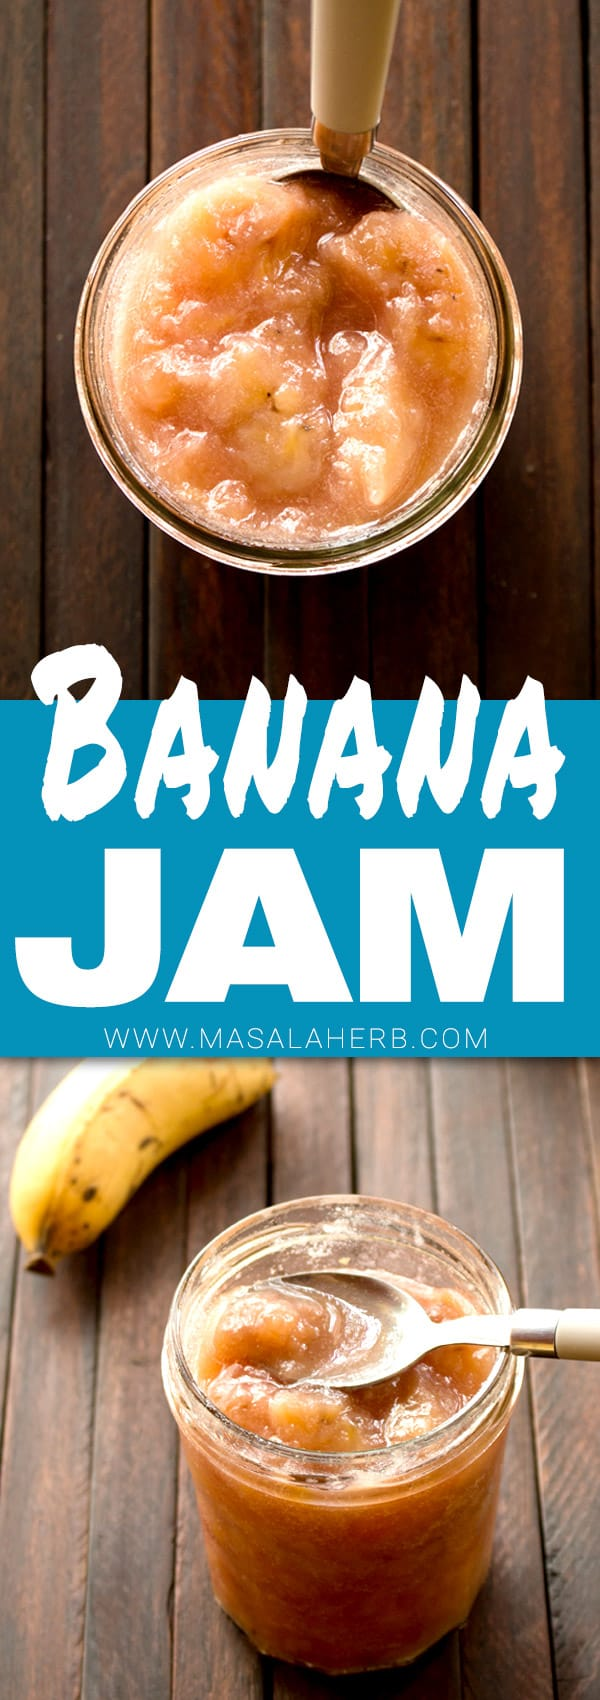 Banana Jam - How to make Banana Jam [Caribbean] | Masala Herb